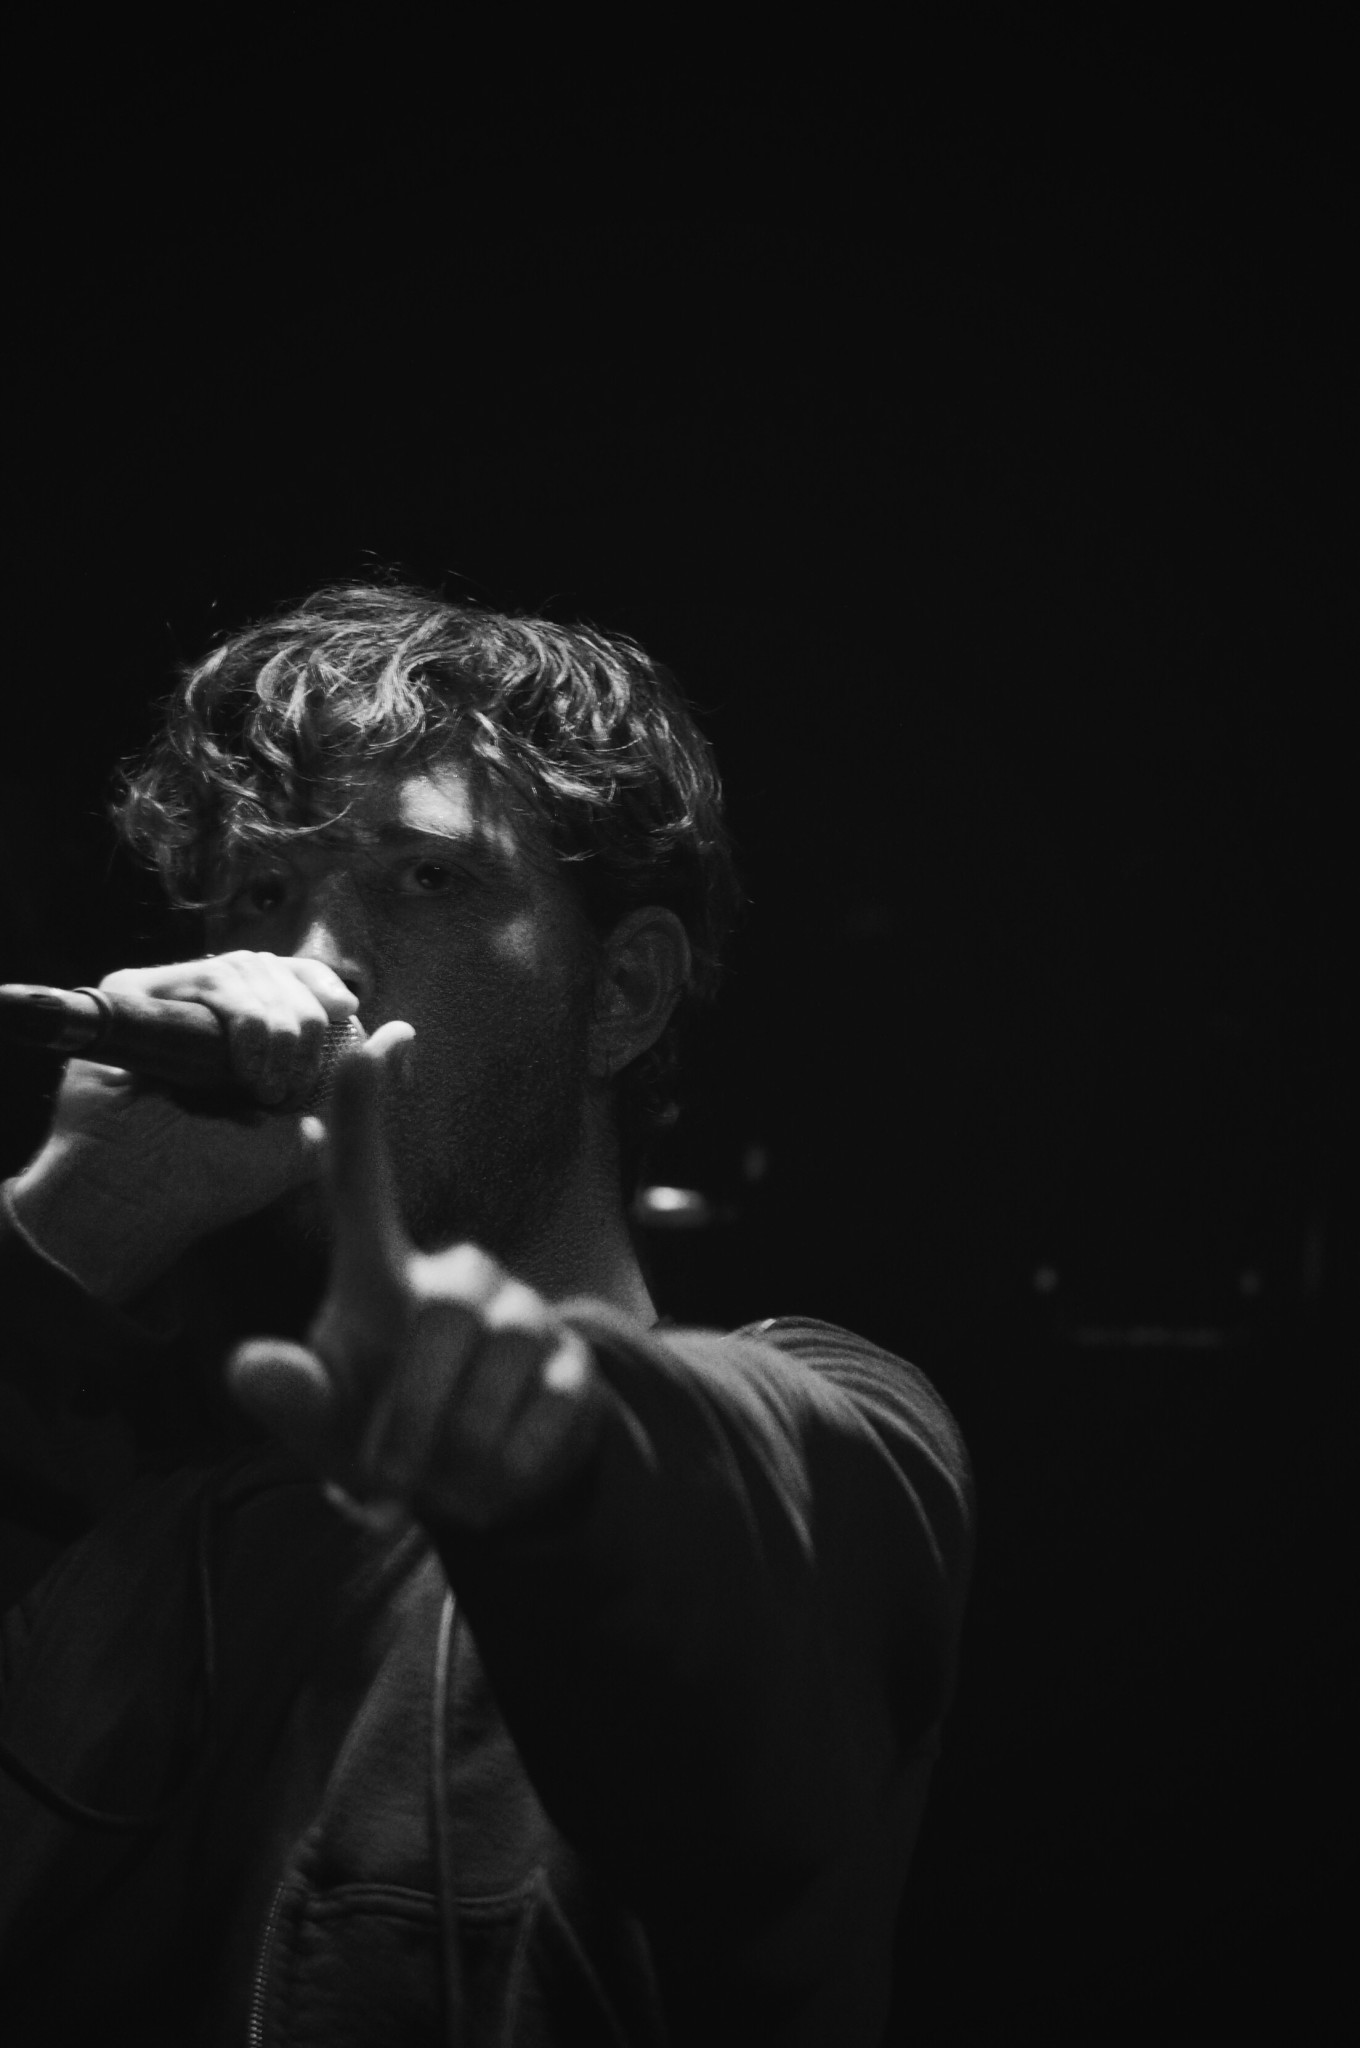 SXSW: Oscar and the Wolf at Sidewinder